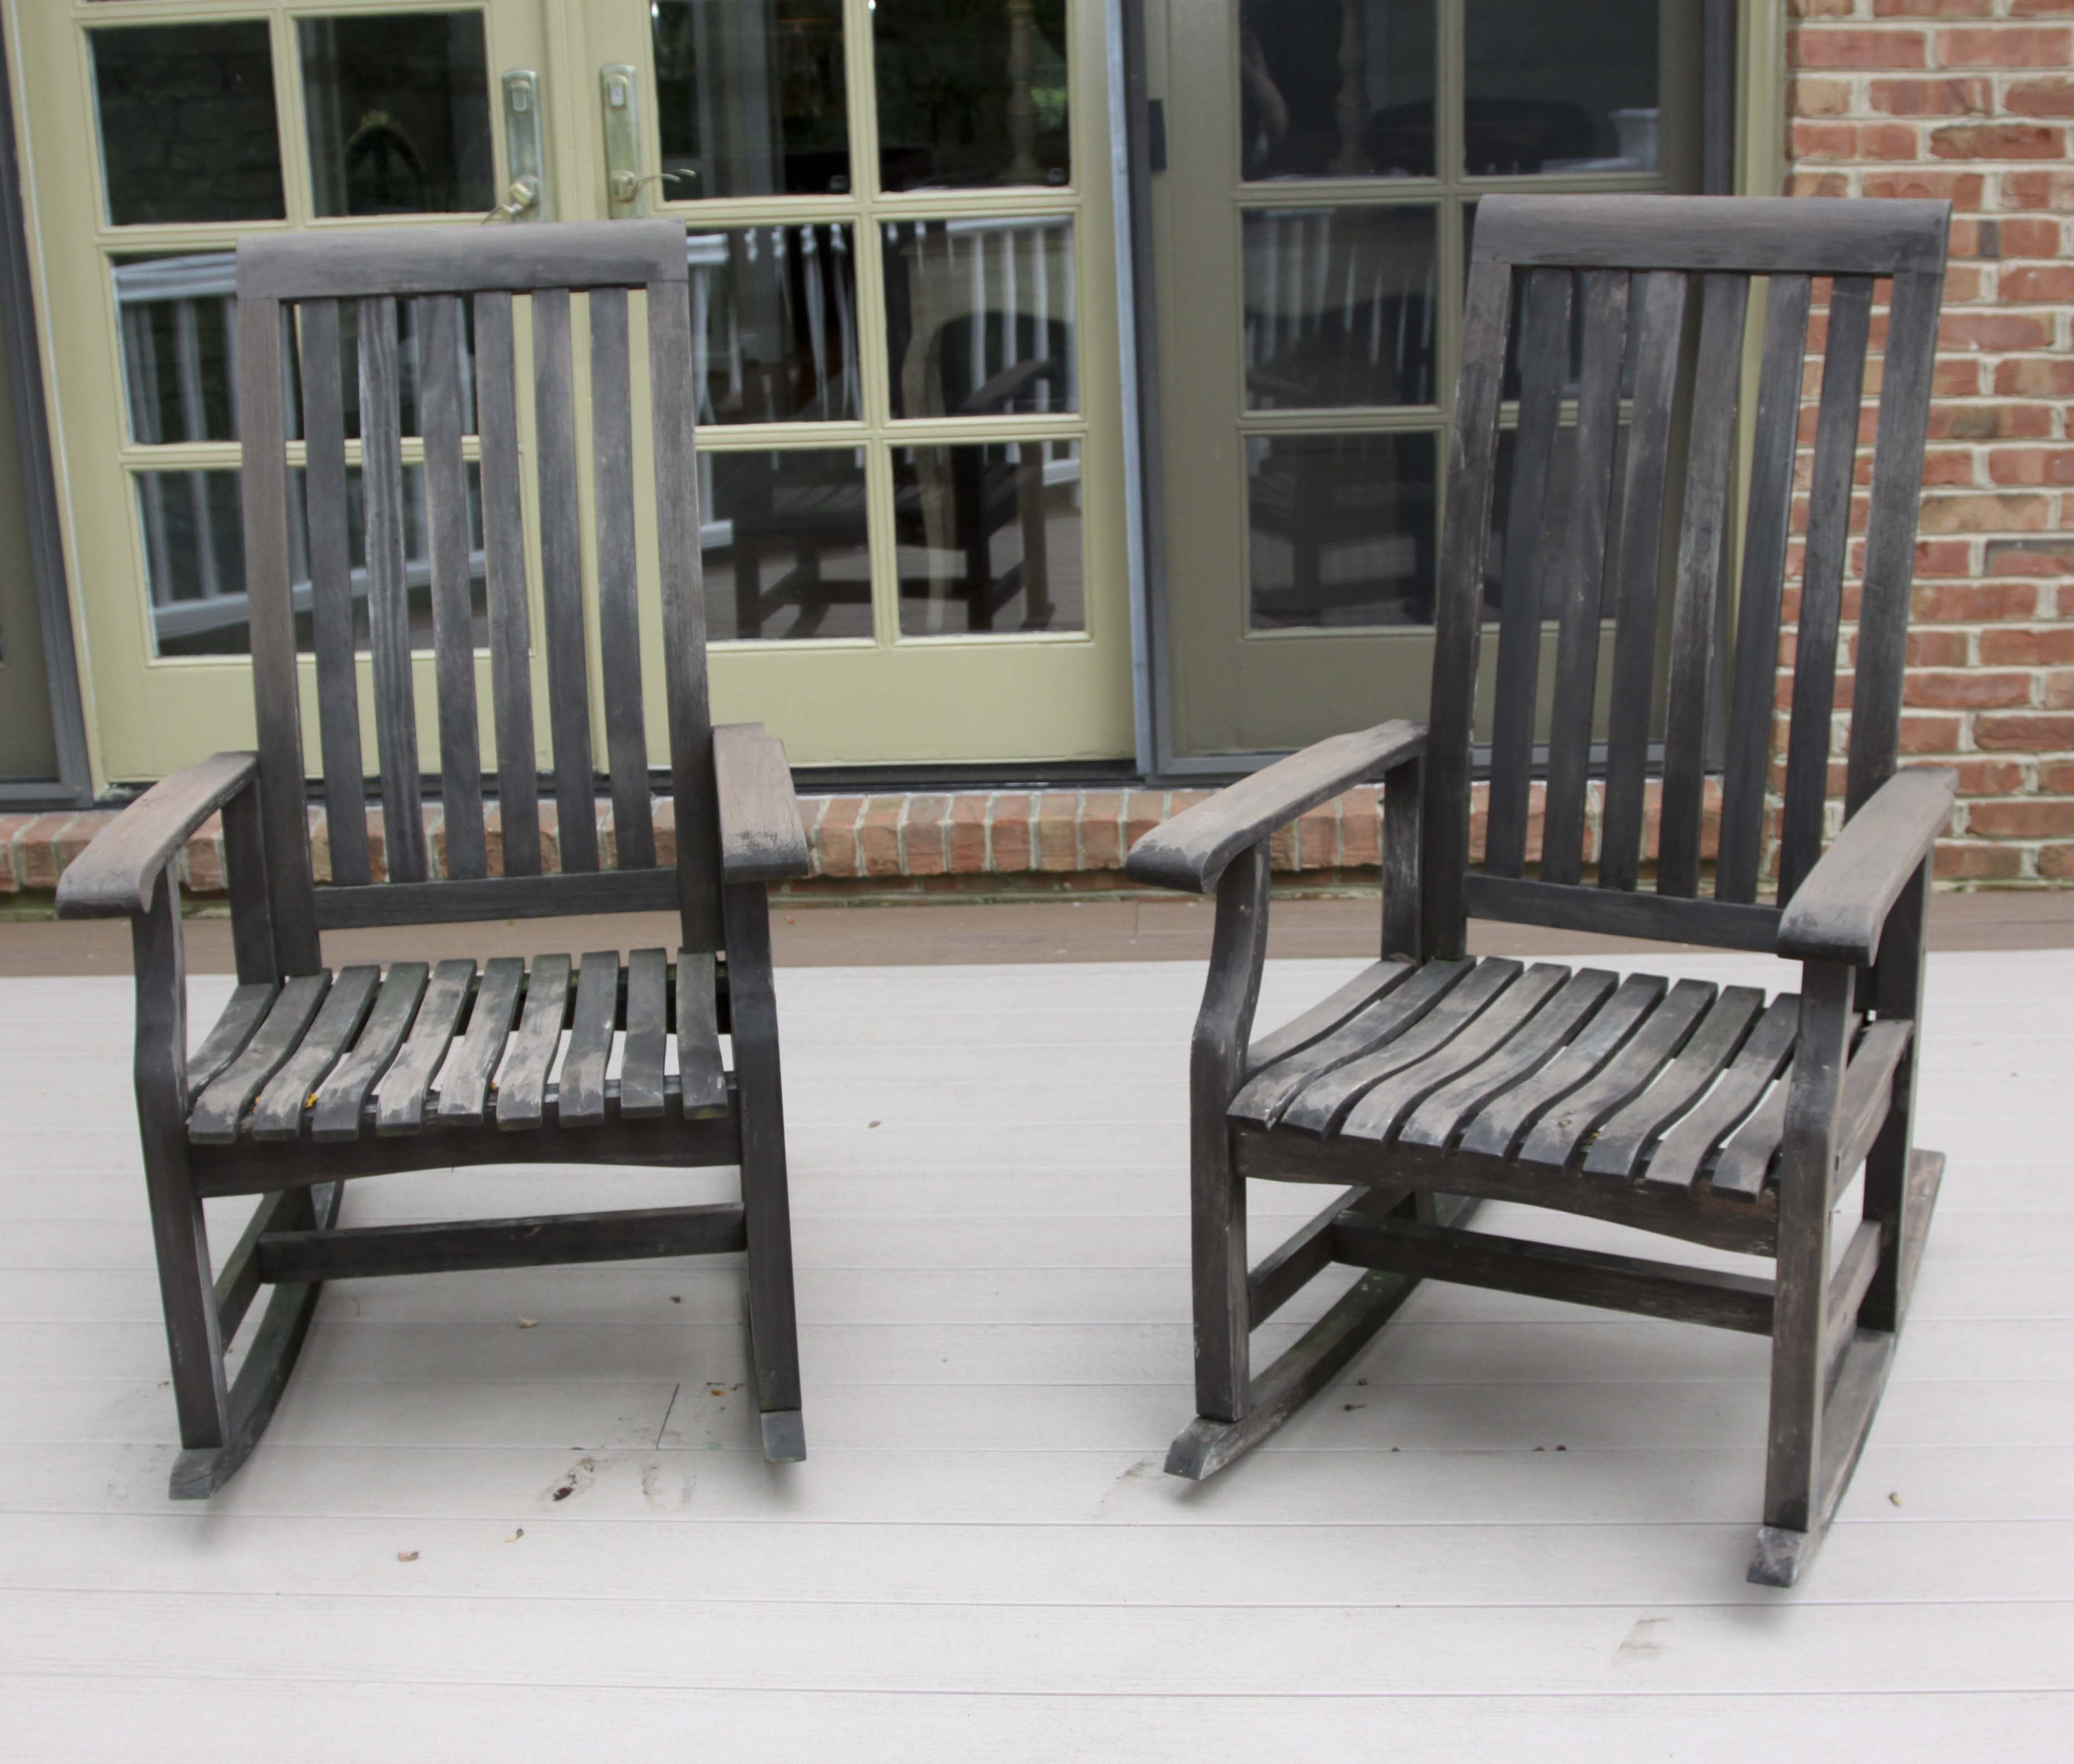 Pair of Wooden Outdoor Rocking Chairs